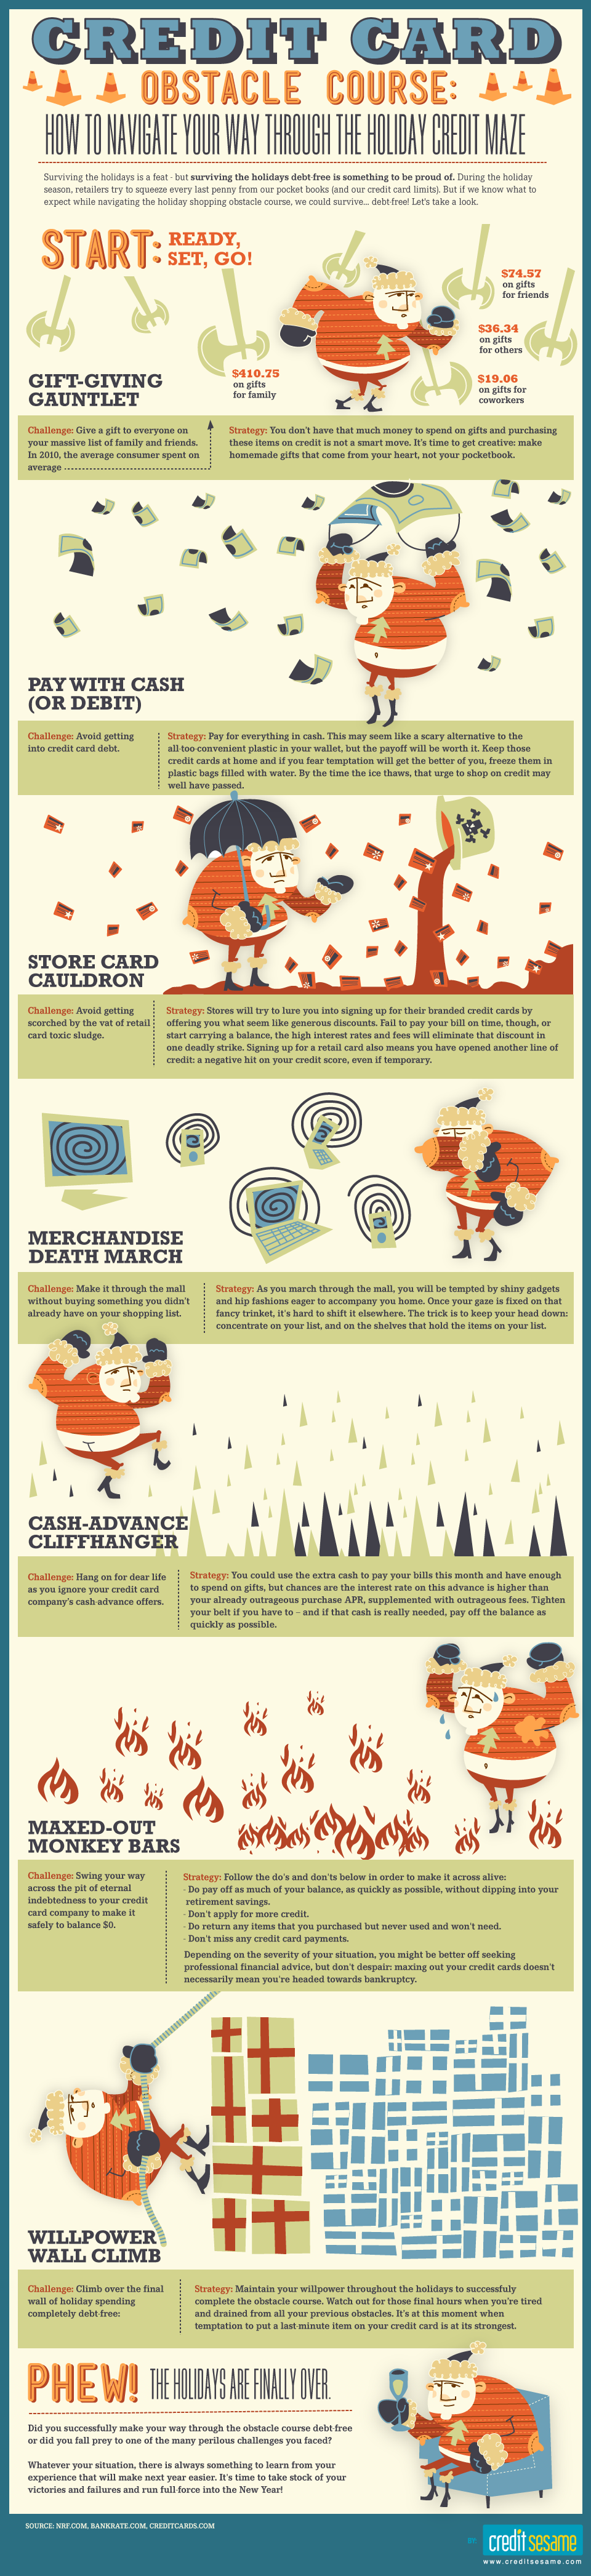 Credit Card Debt Infographic Provided By CreditSesame.com